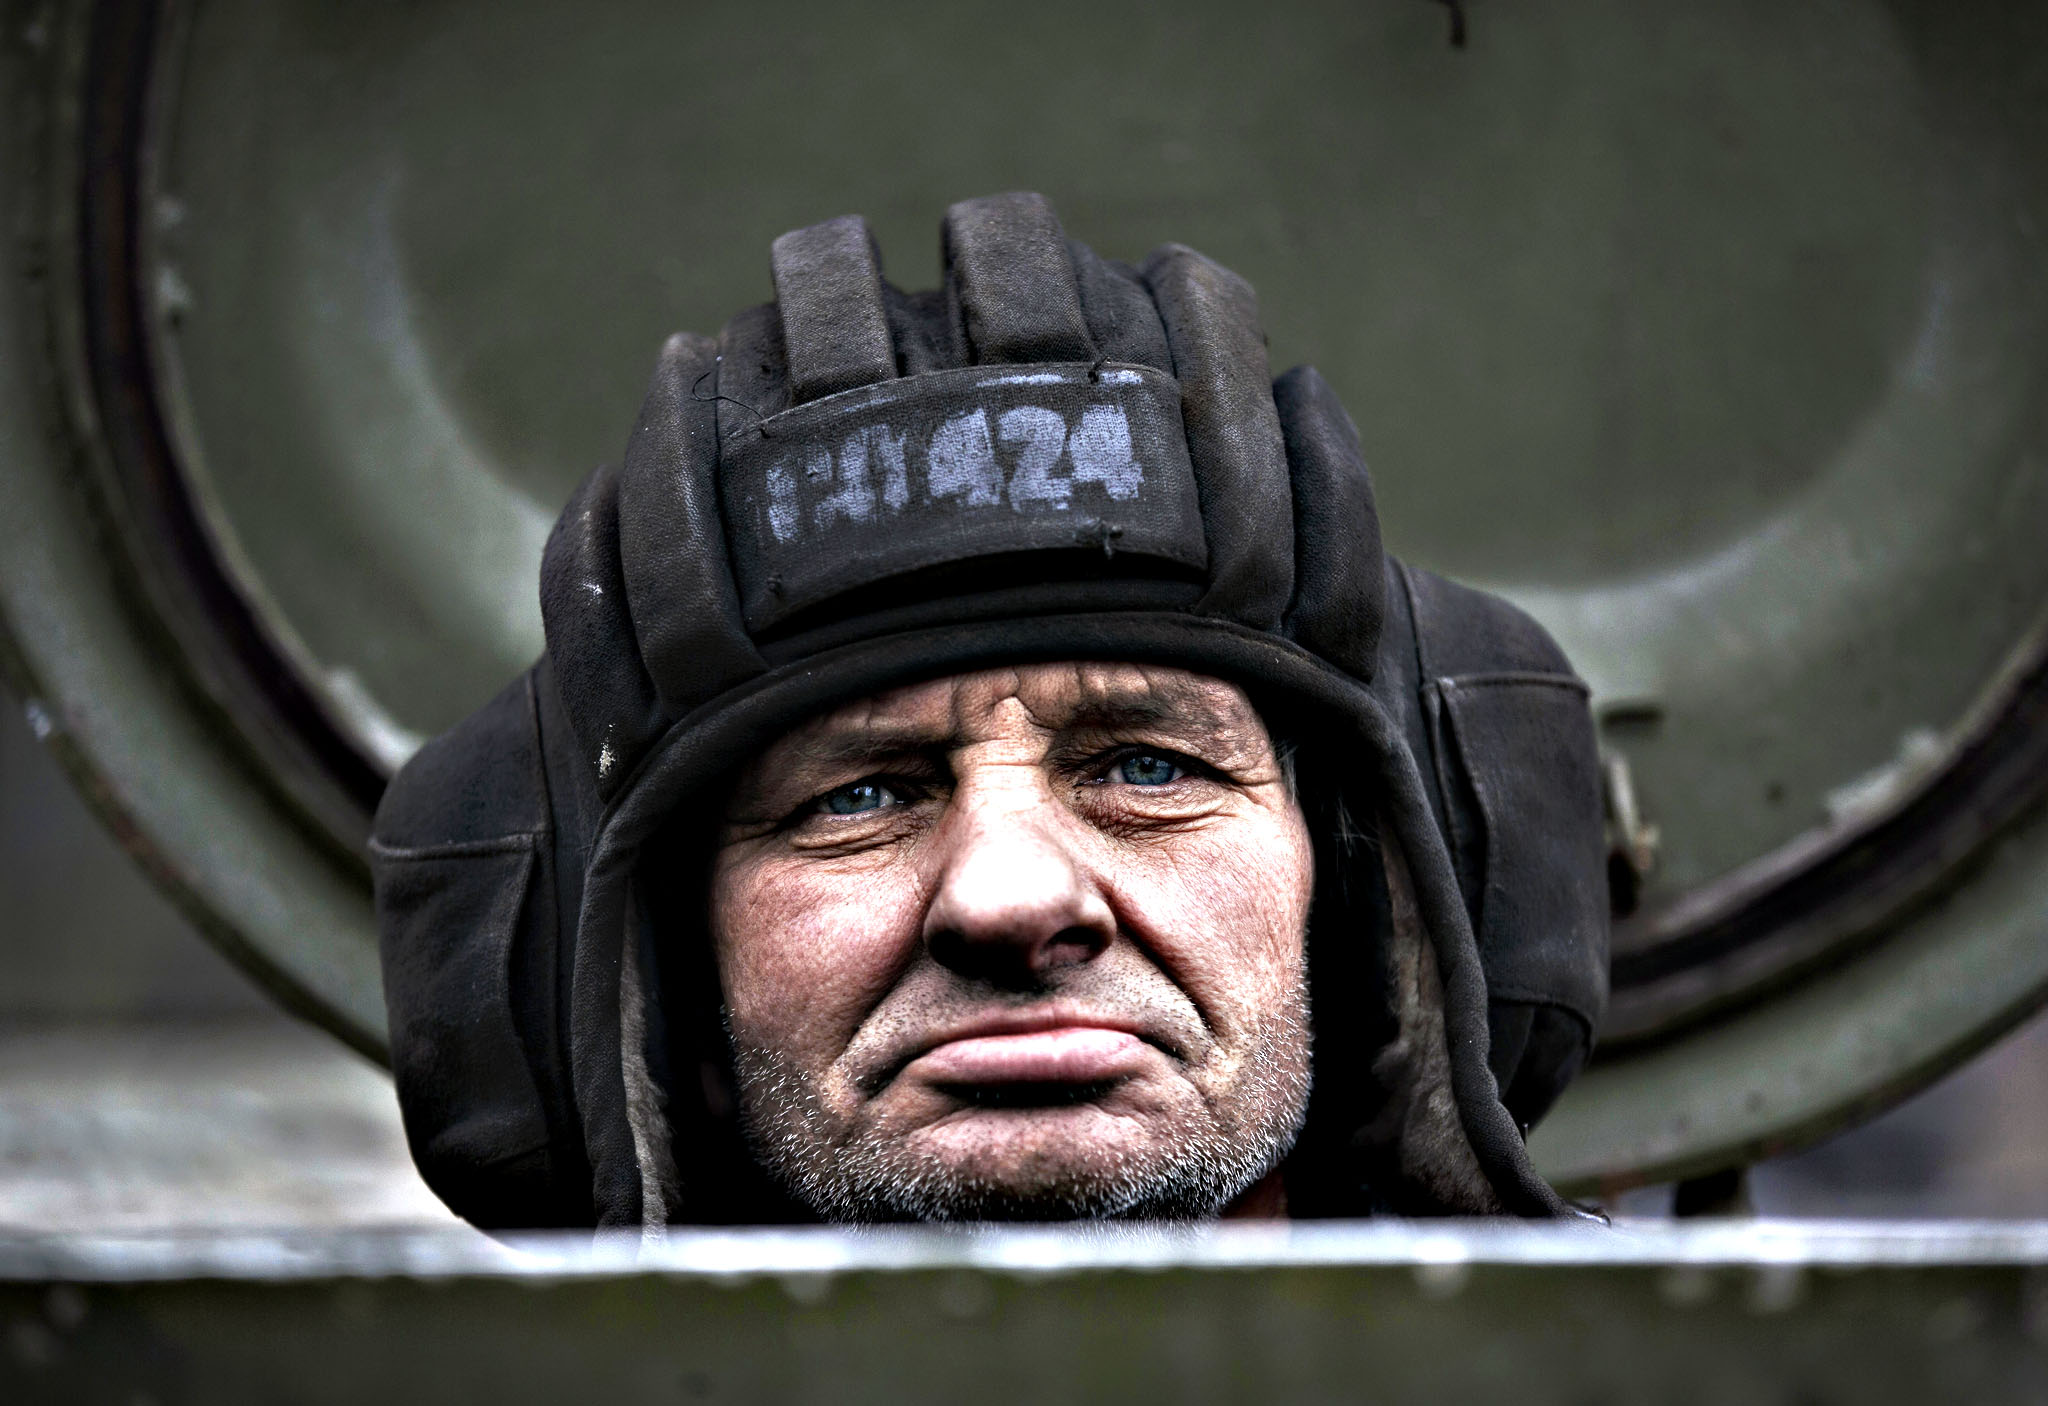 A Russia-backed separatist fighter sits in a self propelled 152 mm artillery piece, part of a unit moved away from the front lines, in Yelenovka, near Donetsk, Ukraine,Thursday, Feb. 26, 2015. Russia's foreign minister is sharply criticizing Ukraine's insistence that it won't begin pulling back heavy weapons in its fight against separatists in the east until the rebels fully observe a cease-fire.